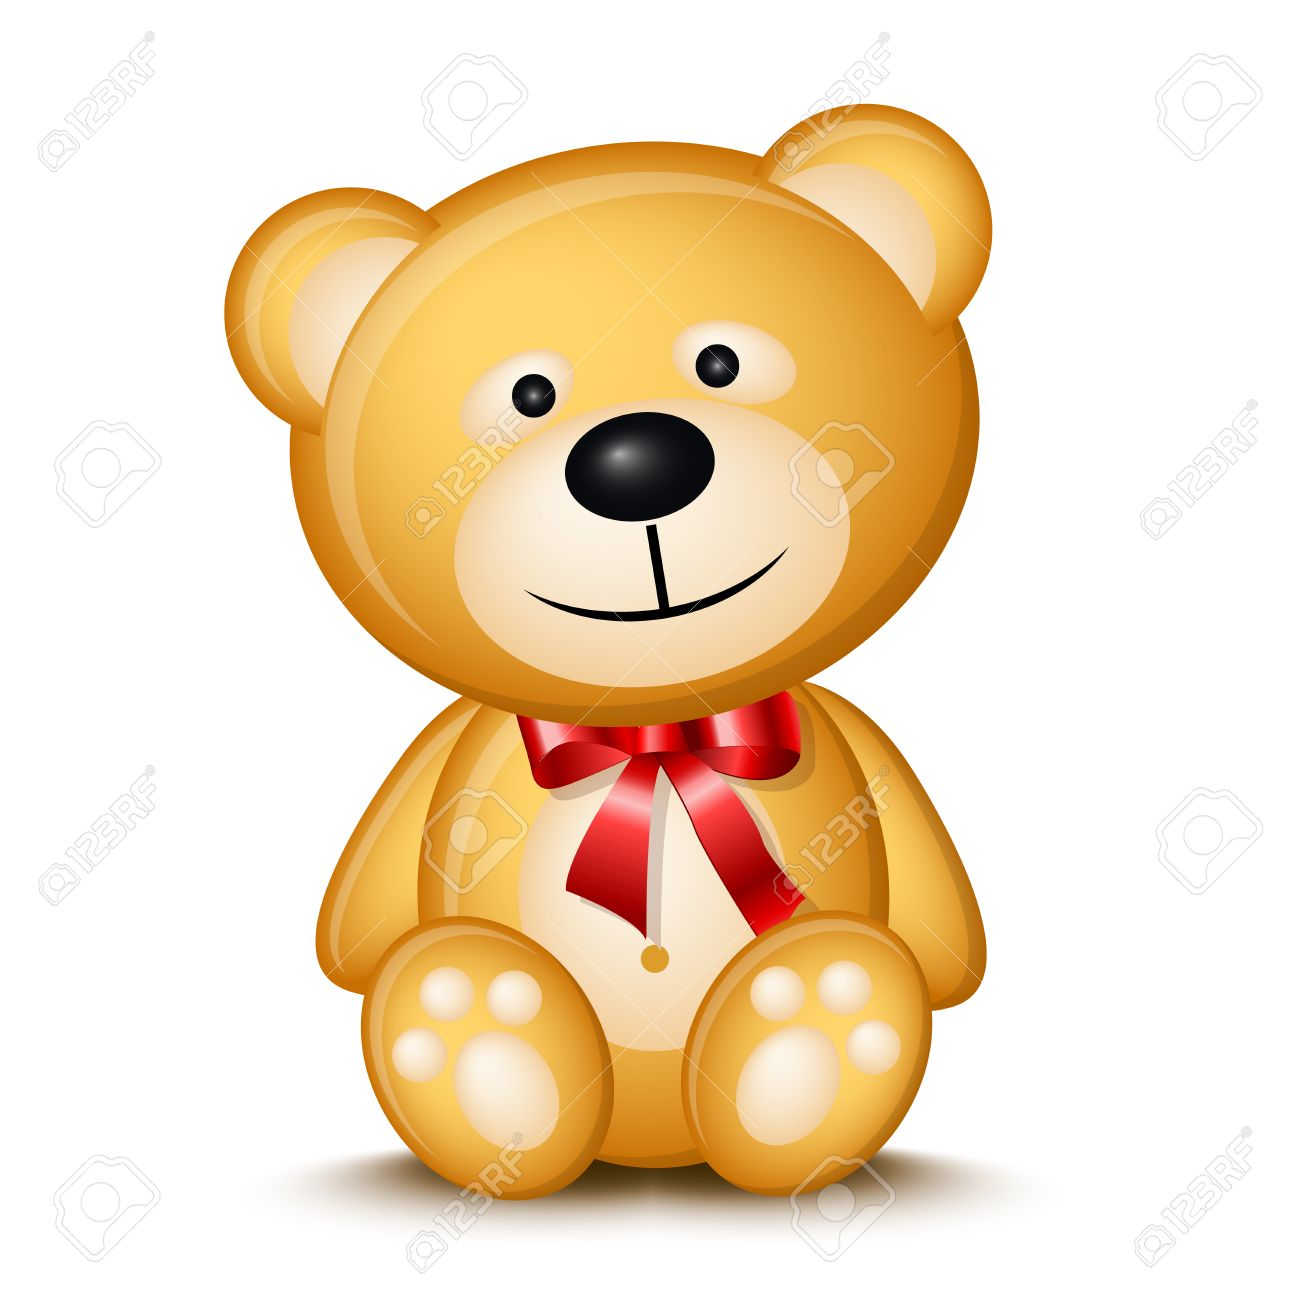 Little Teddy Bear Royalty Free Cliparts, Vectors, And Stock ...